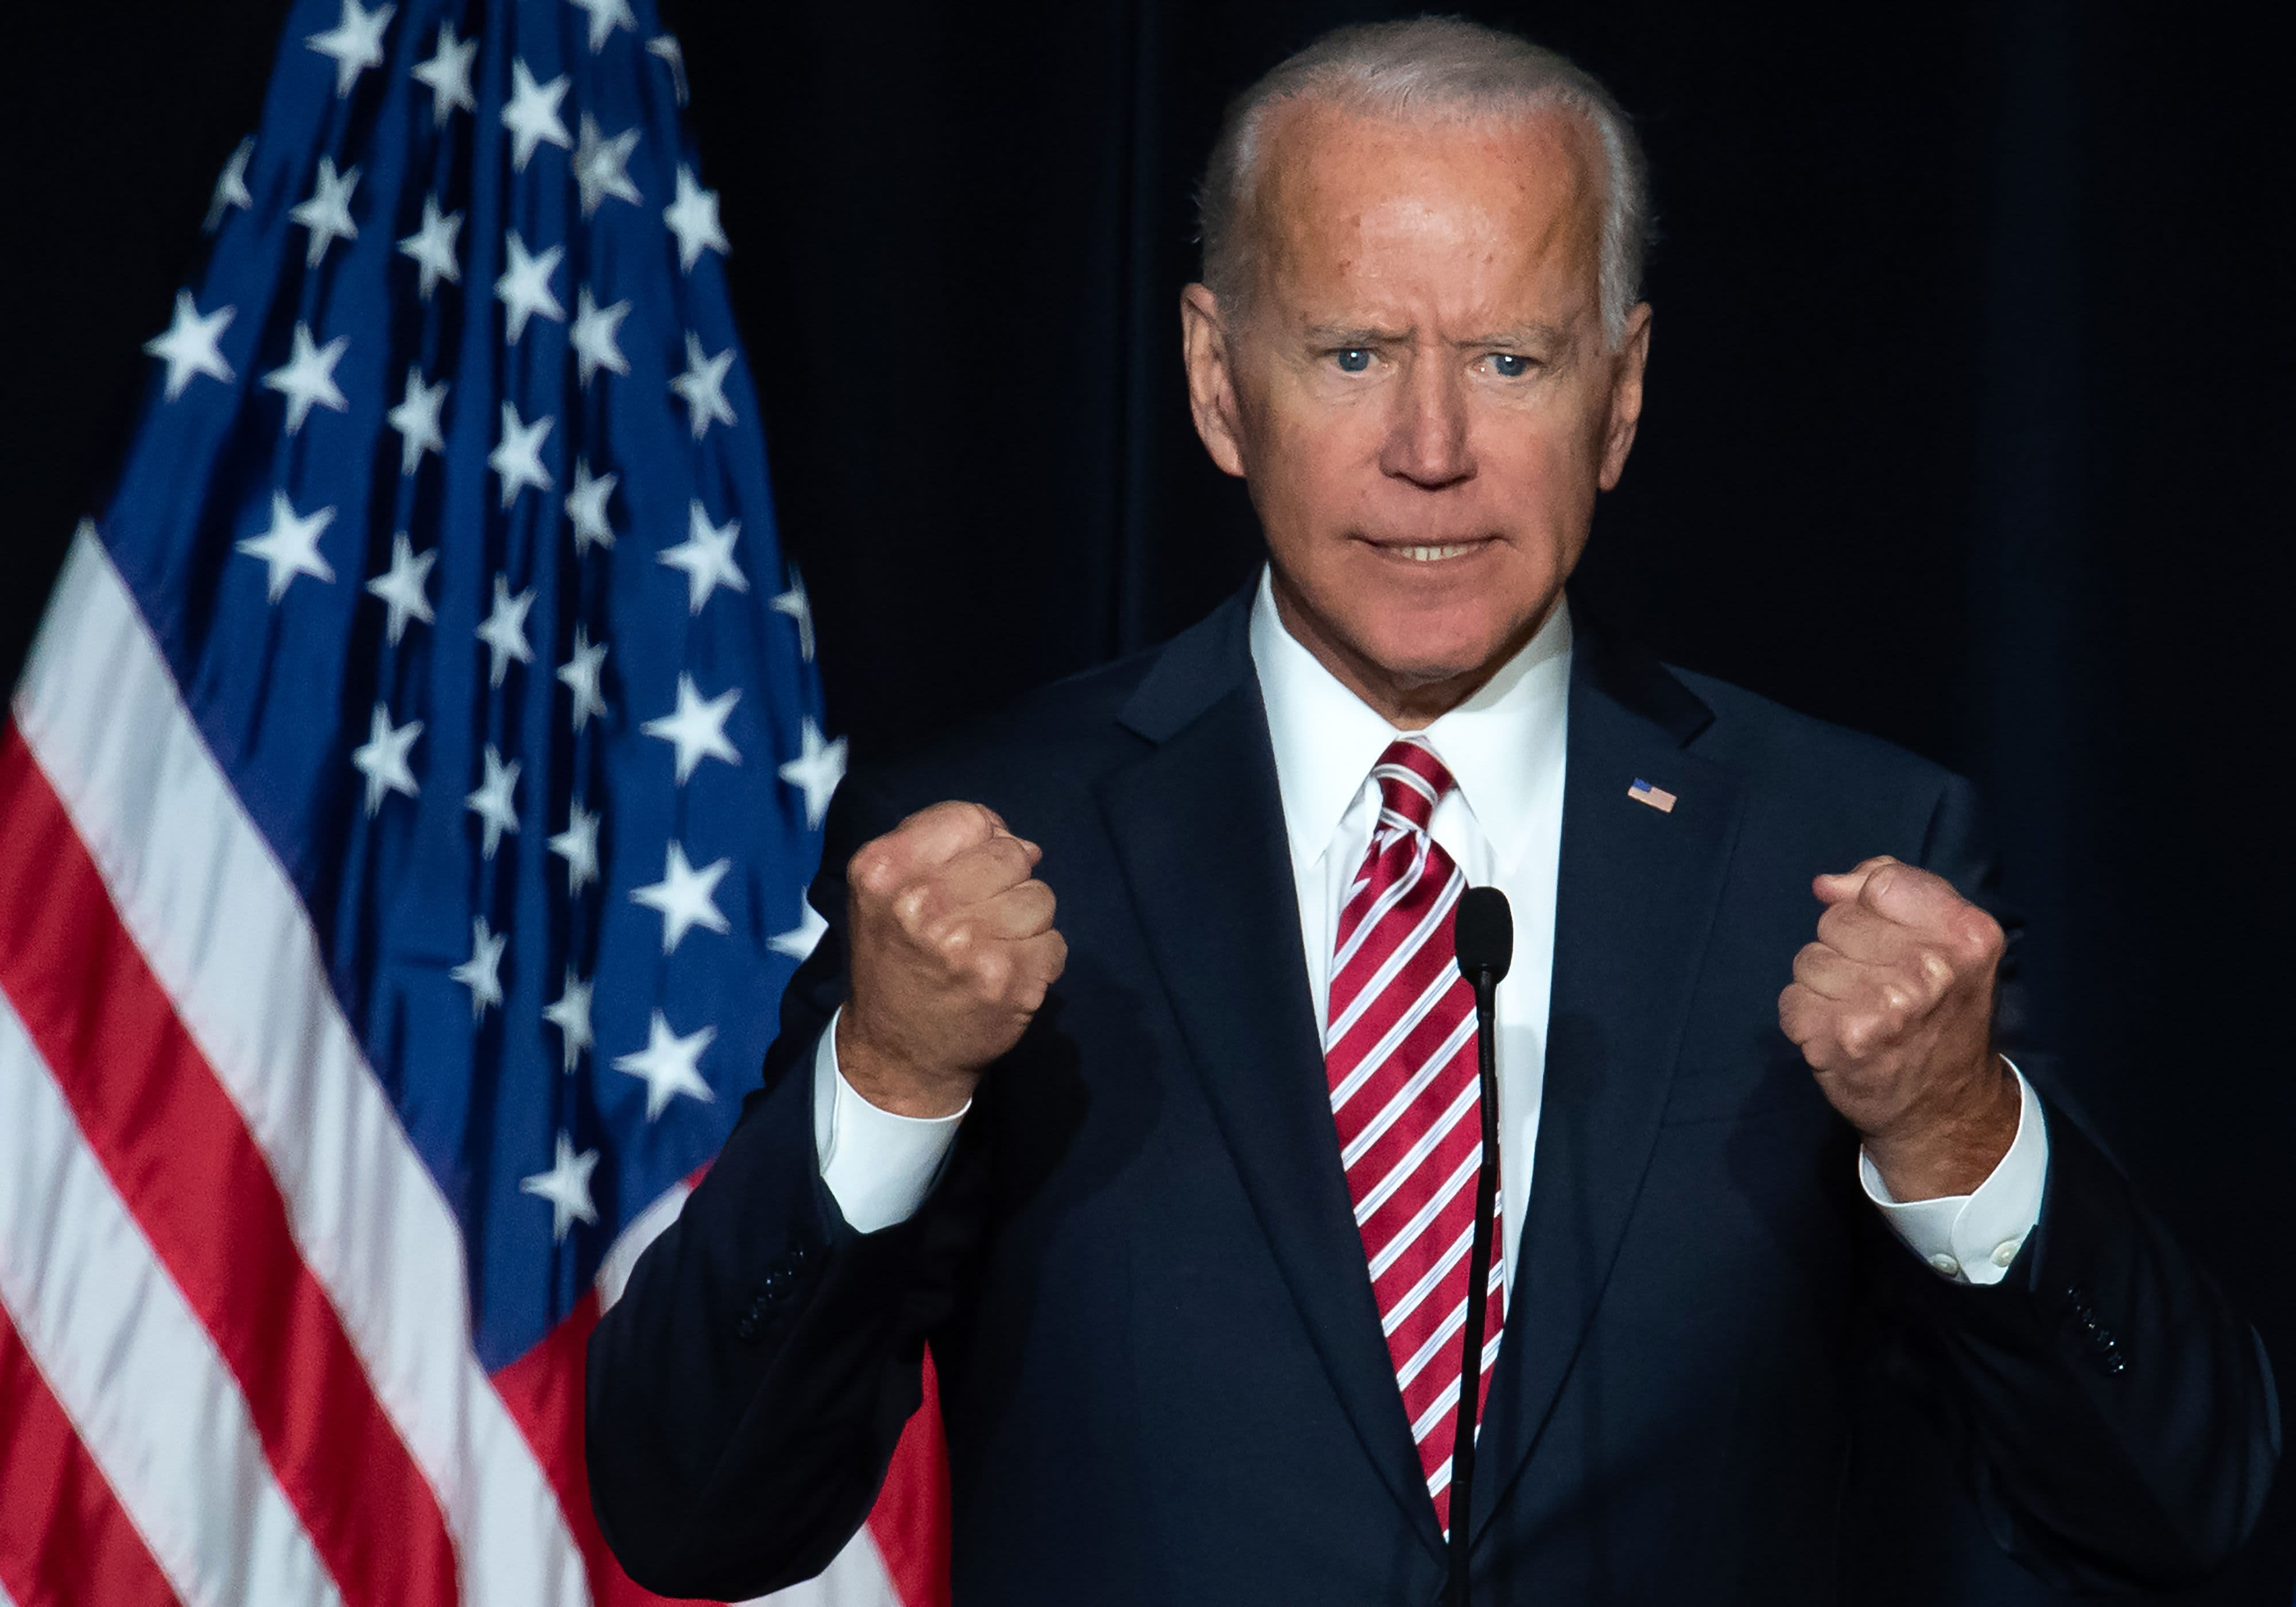 A parody website with embarrassing photos of Joe Biden is outranking his official campaign page on Google thumbnail